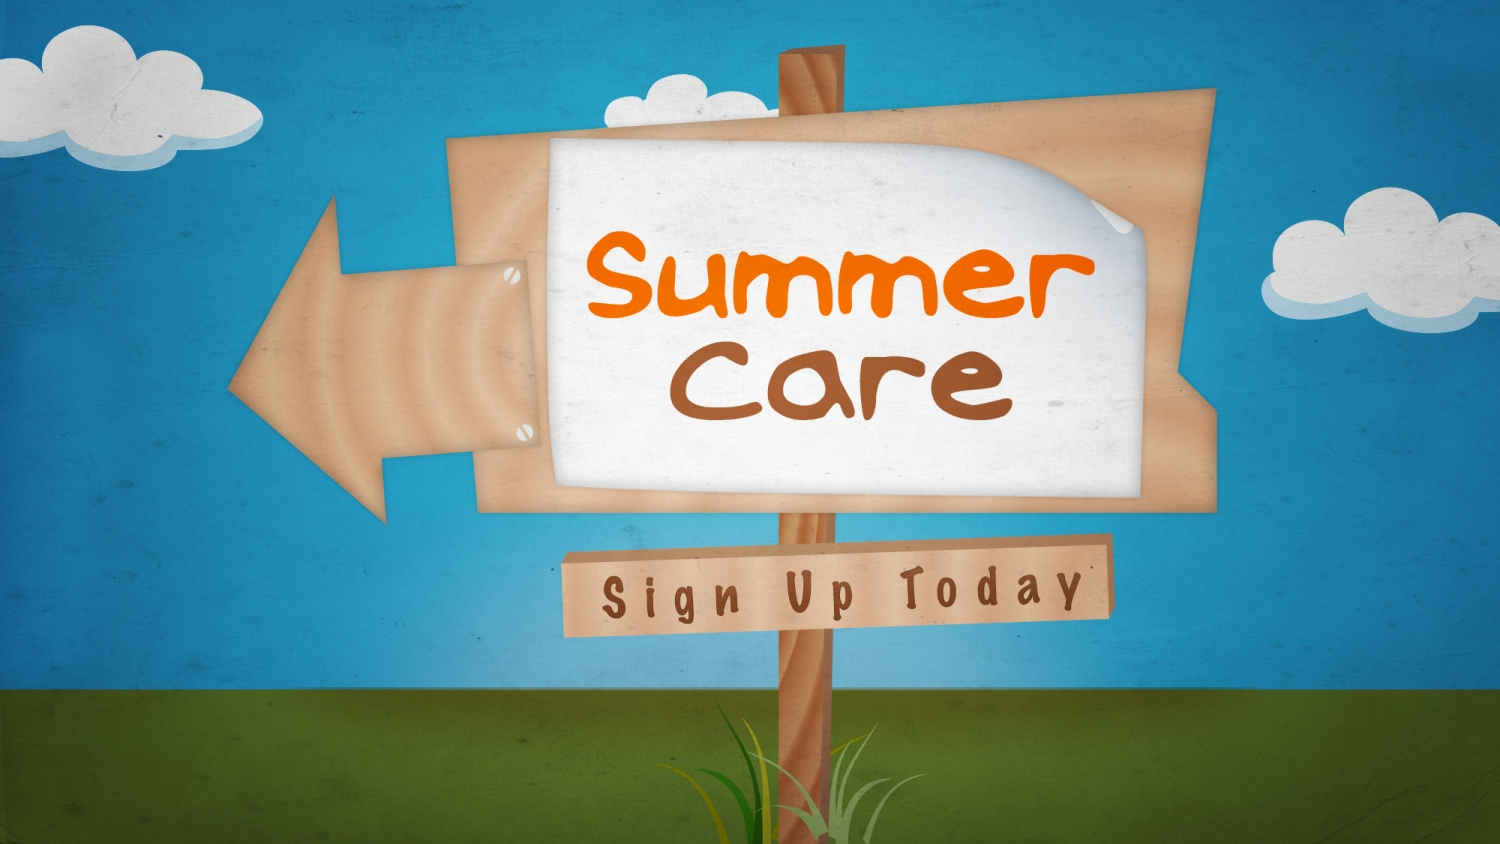 Summer Care Opportunity